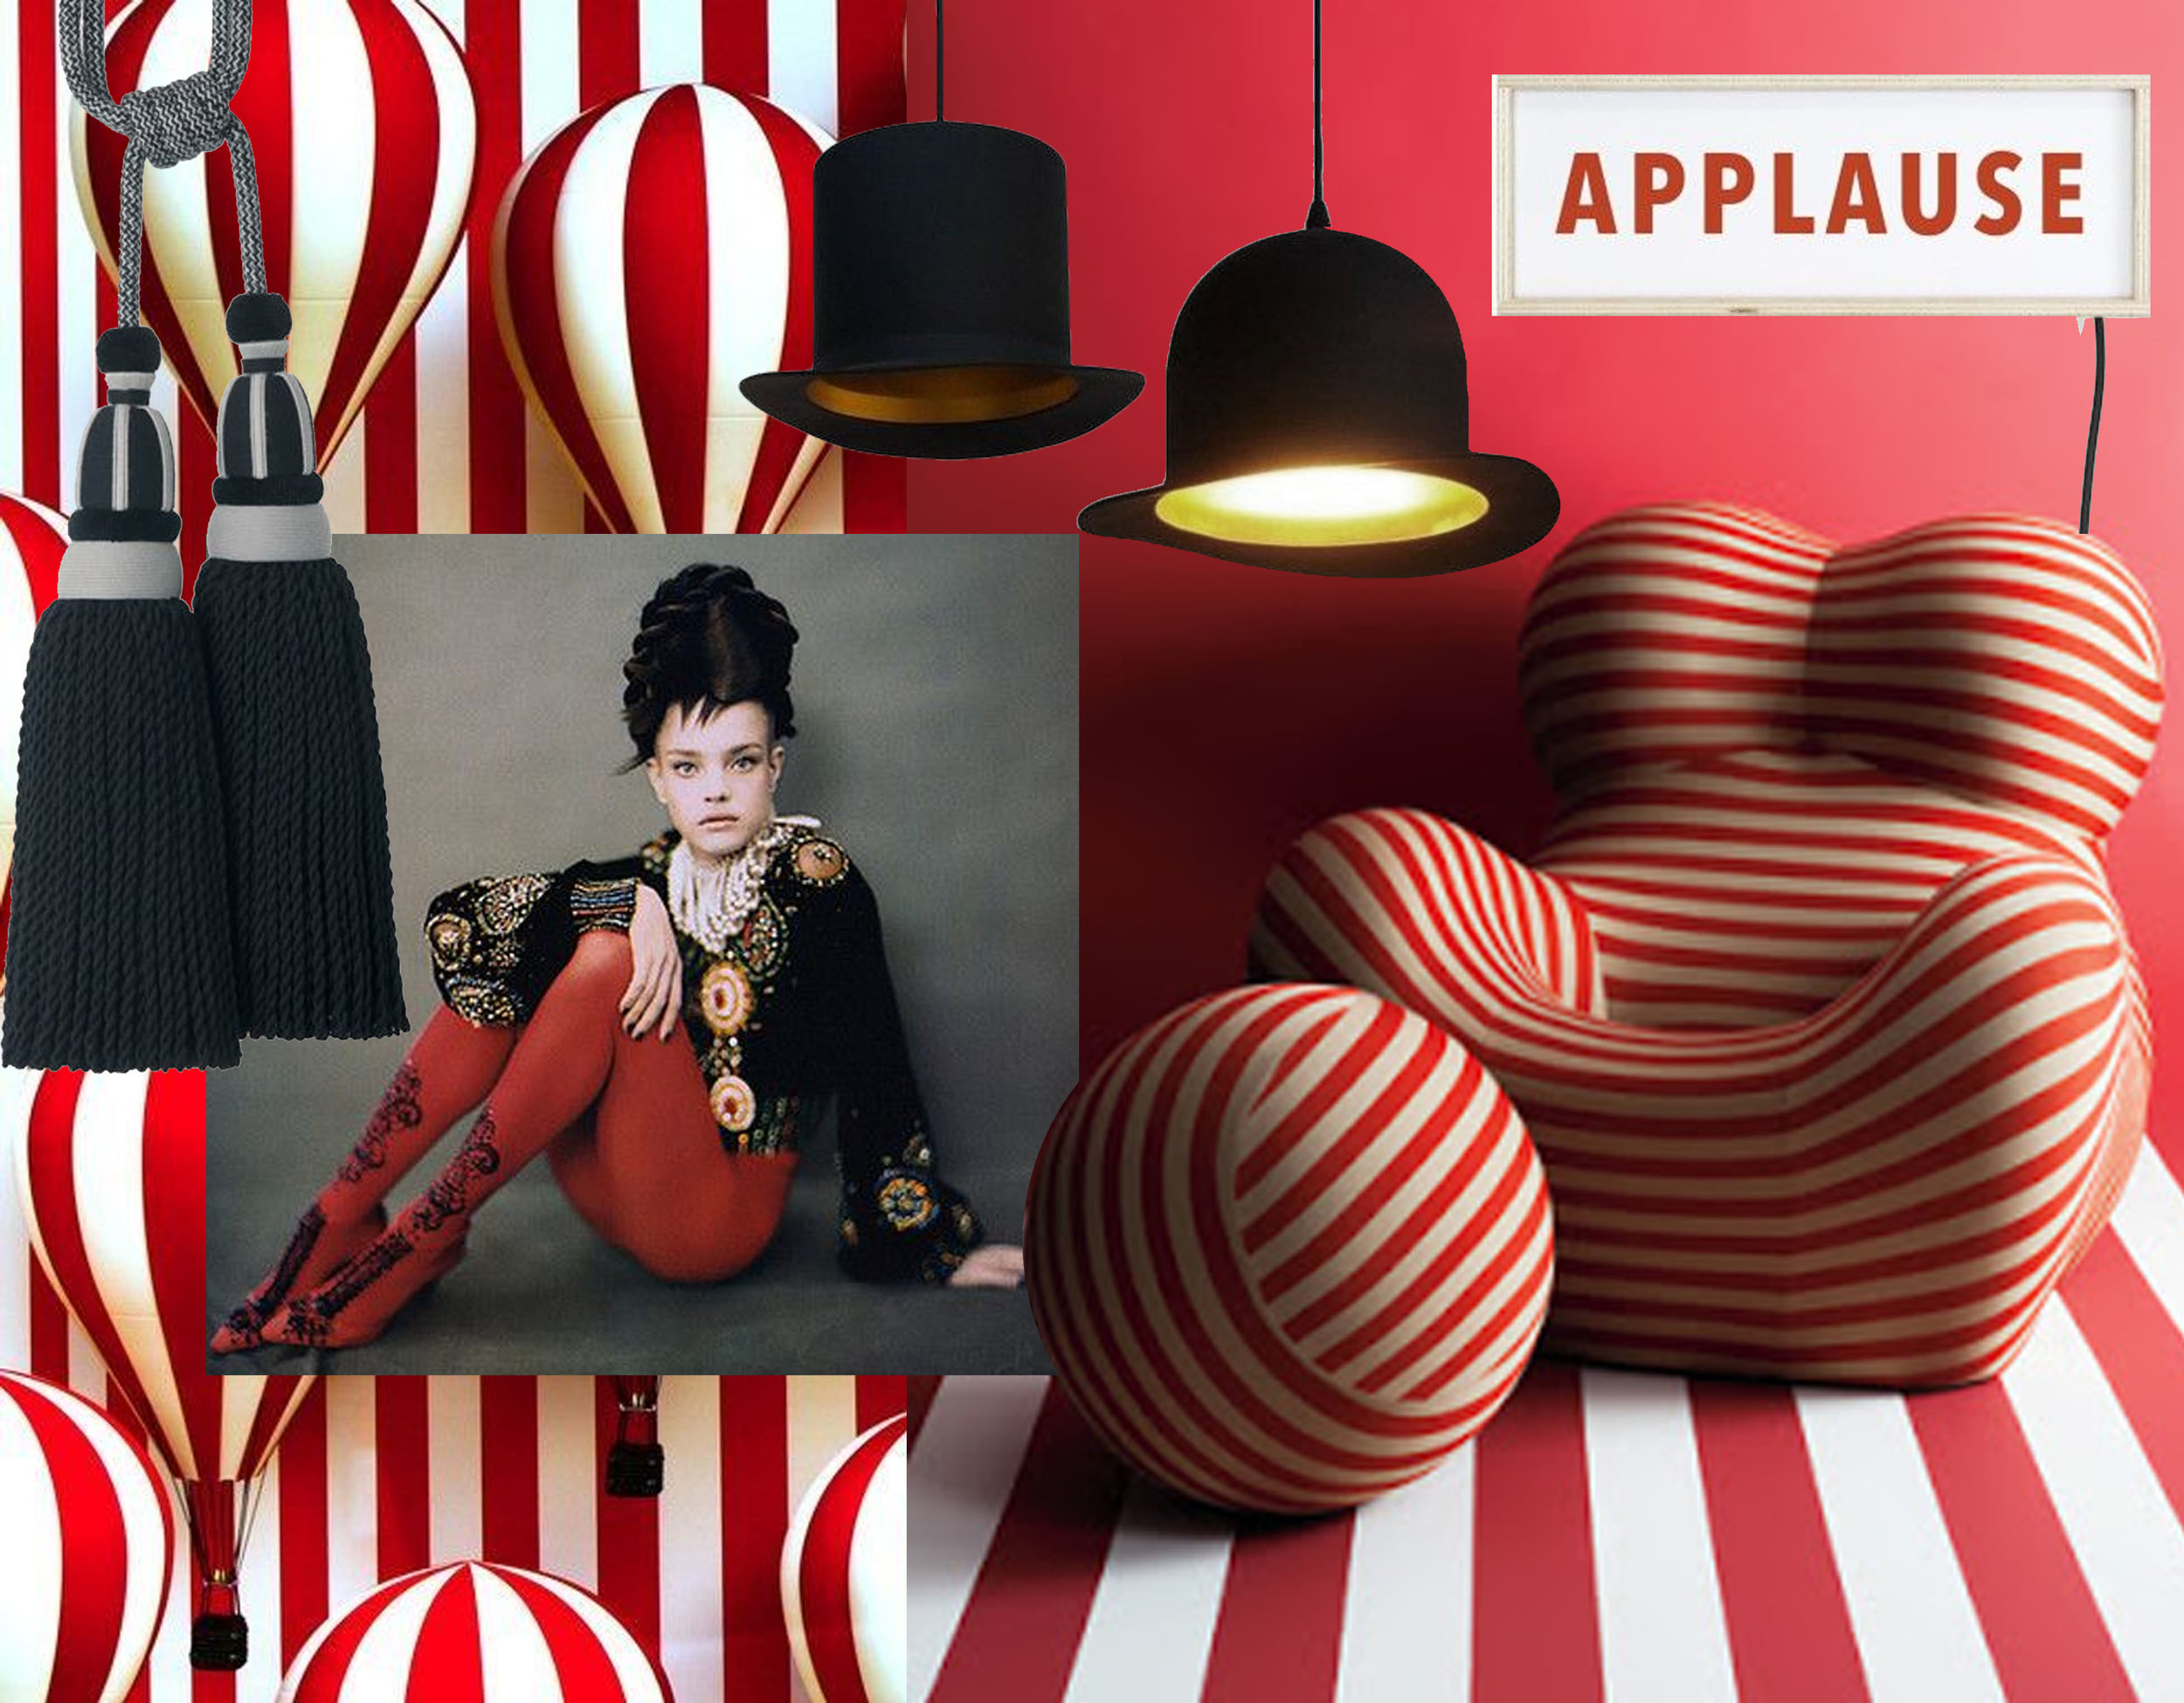 tie back Plaza  Houles  - candy striped ballons via  Vienna Right Now  - fashion image  Paolo Roversi  - Applause wall lamp  Really Nice Things  -hanging lamp Bombin  Really Nice Things  - hanging lamp Borsalino  Really Nice Things